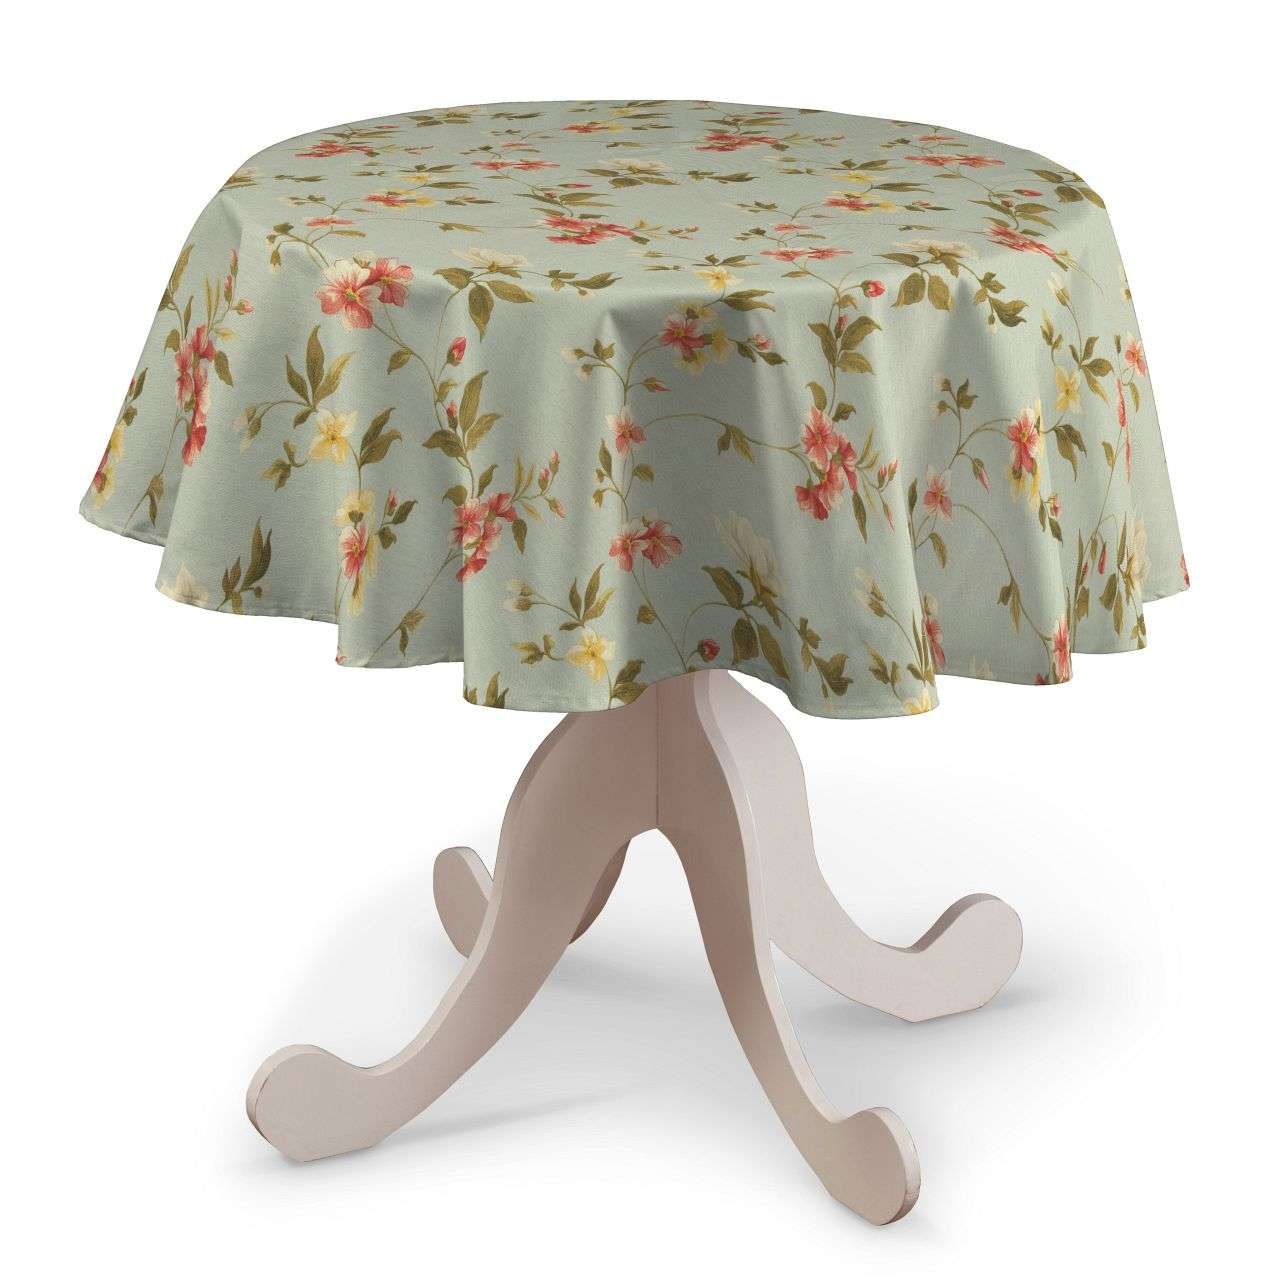 Round tablecloth Ø 135 cm (53 inch) in collection Londres, fabric: 124-65